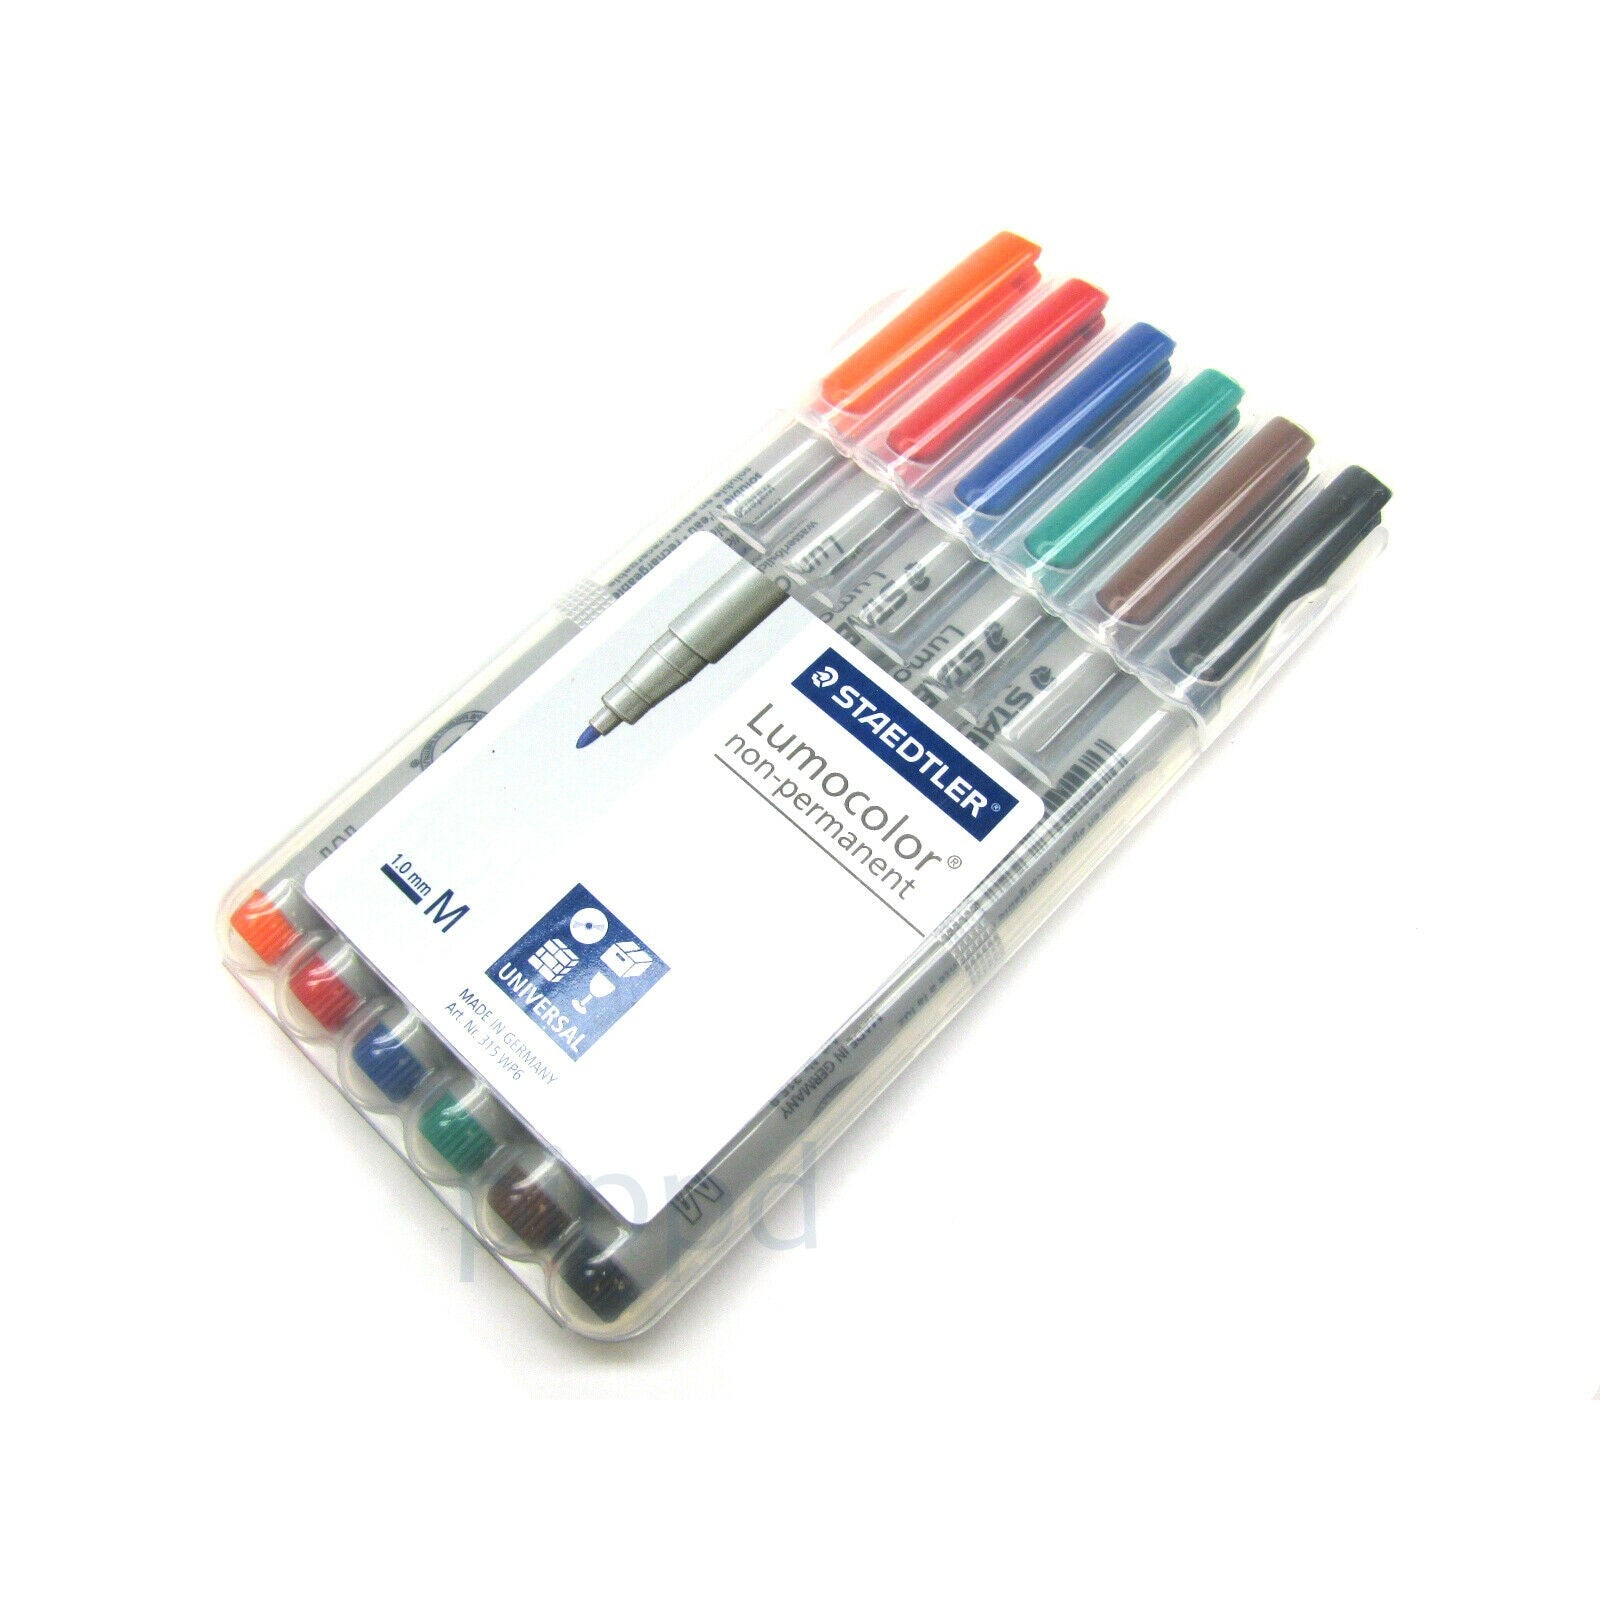 Staedtler Lumocolor Non-Permanent Markers 6-pack